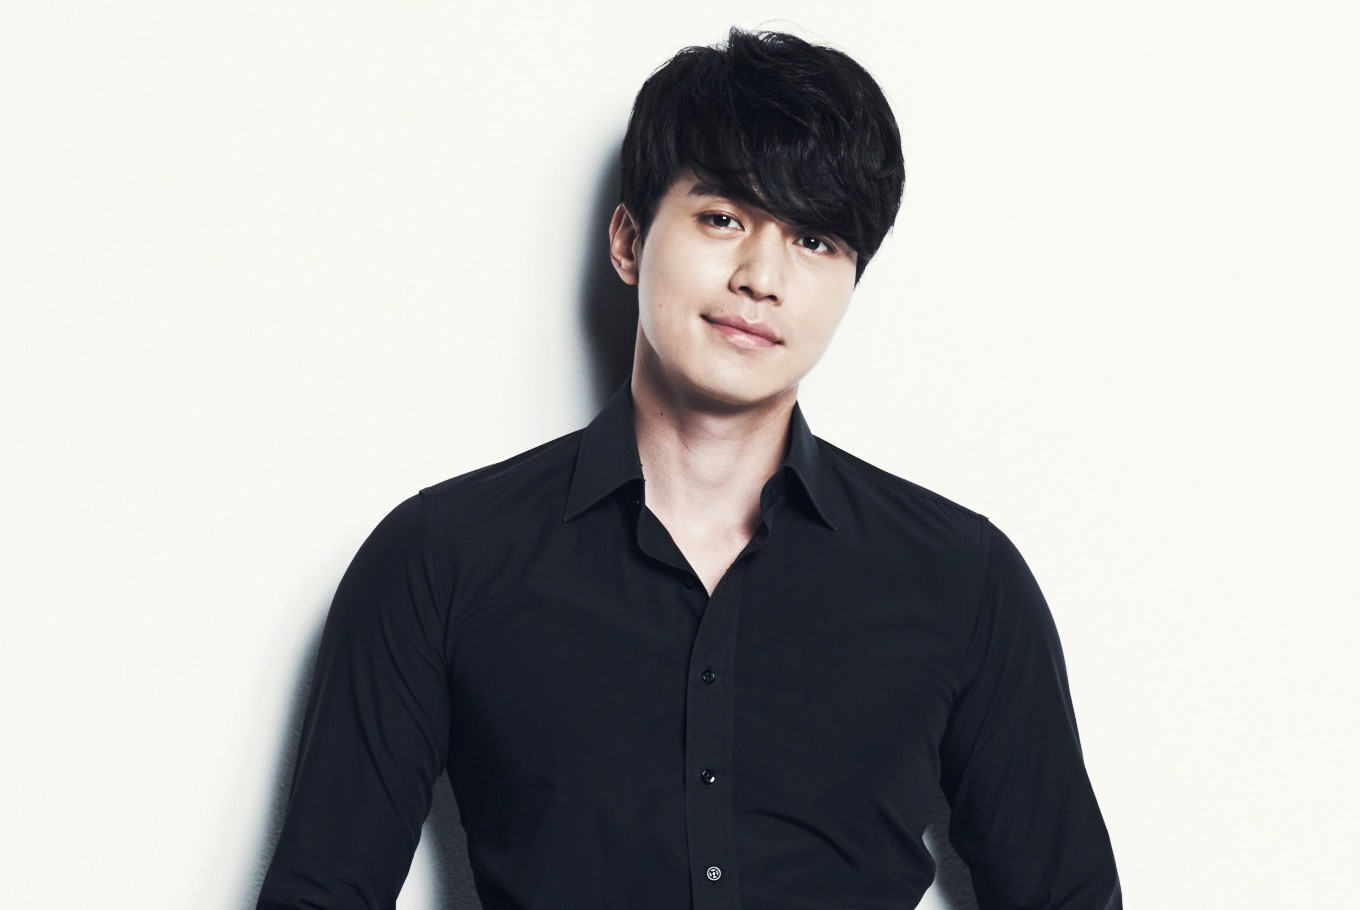 lee dong wook The latest tweets from lee dongwook (@actor_wookie) oblivion is a part of god blessing [roleplayer dedicated for actor lee dongwook] #kingkongbystarshipent #nondating we've detected that javascript is disabled in your browser.